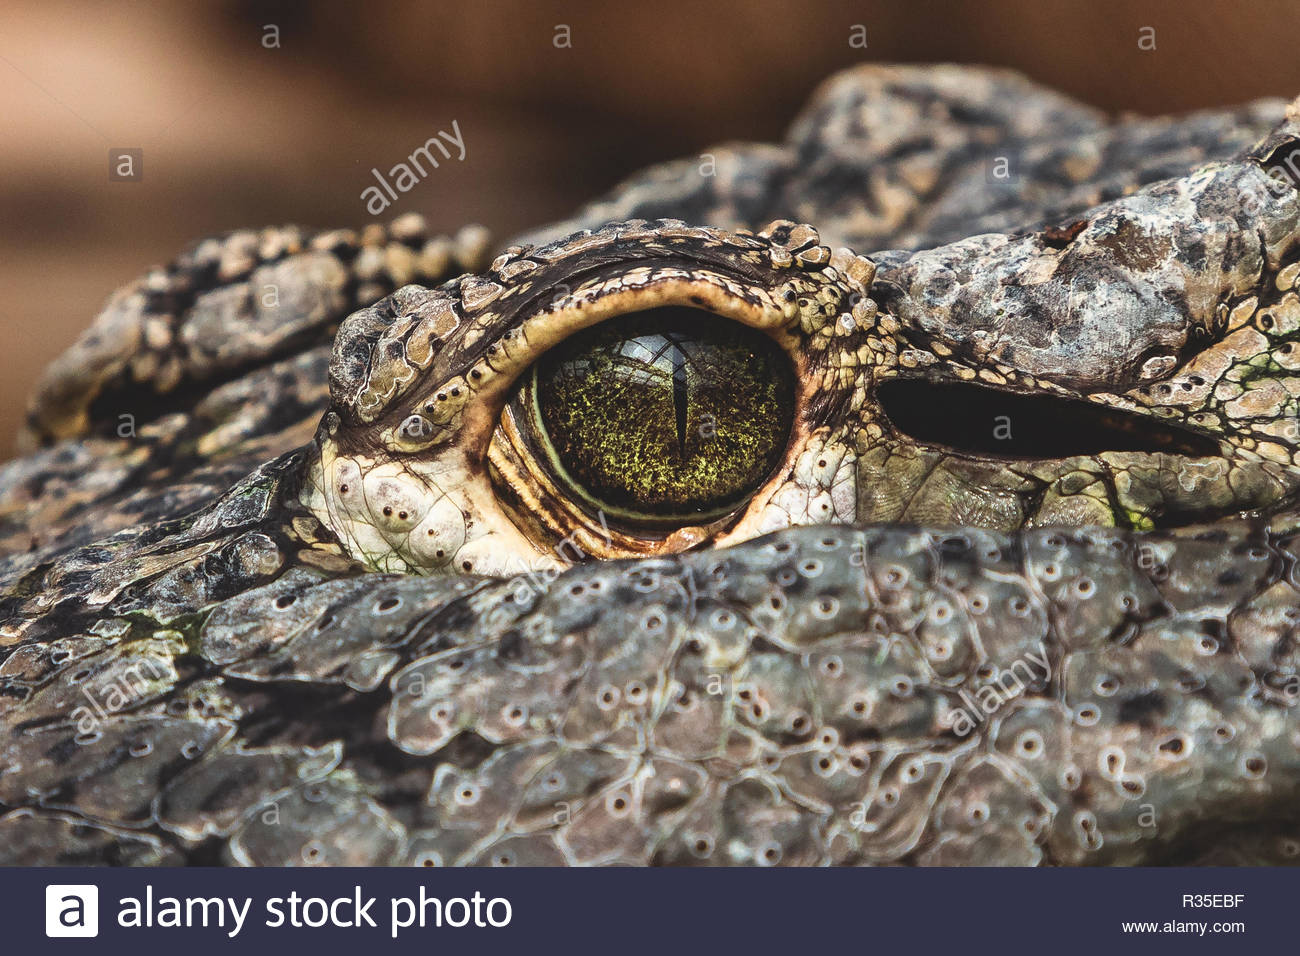 Alligator has a long armored body with thick scales or bony plates called osteoderms or scutes, When the alligator slips under the water, its nostrils Stock Photo